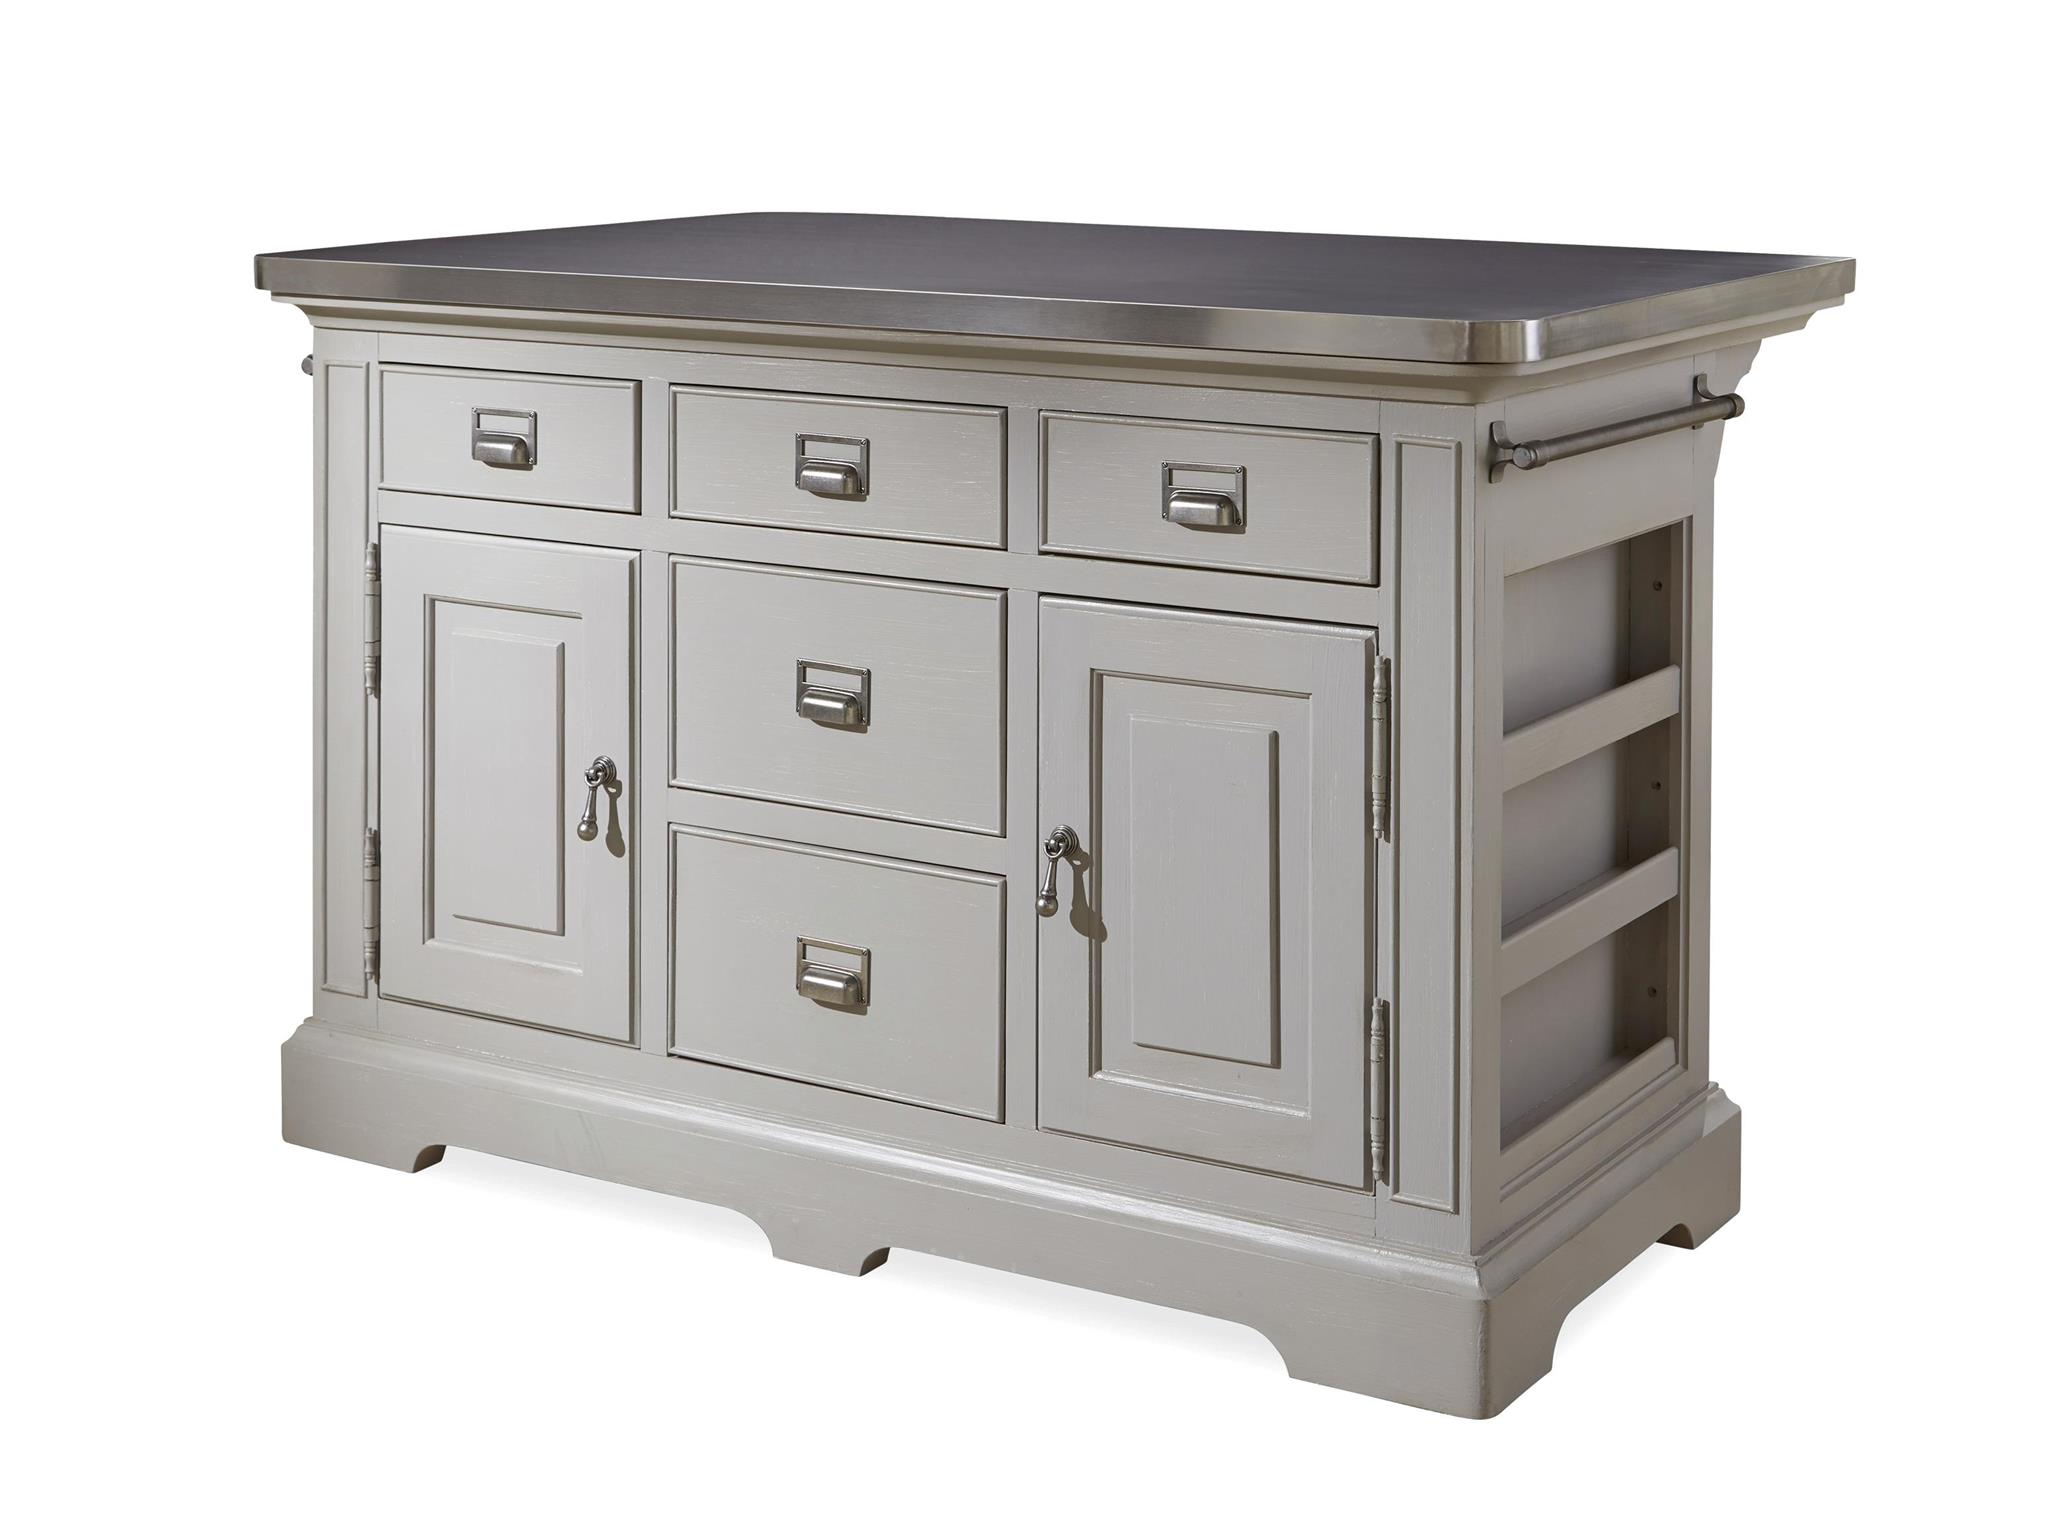 Universal Furniture Dogwood Paula Deen Home The